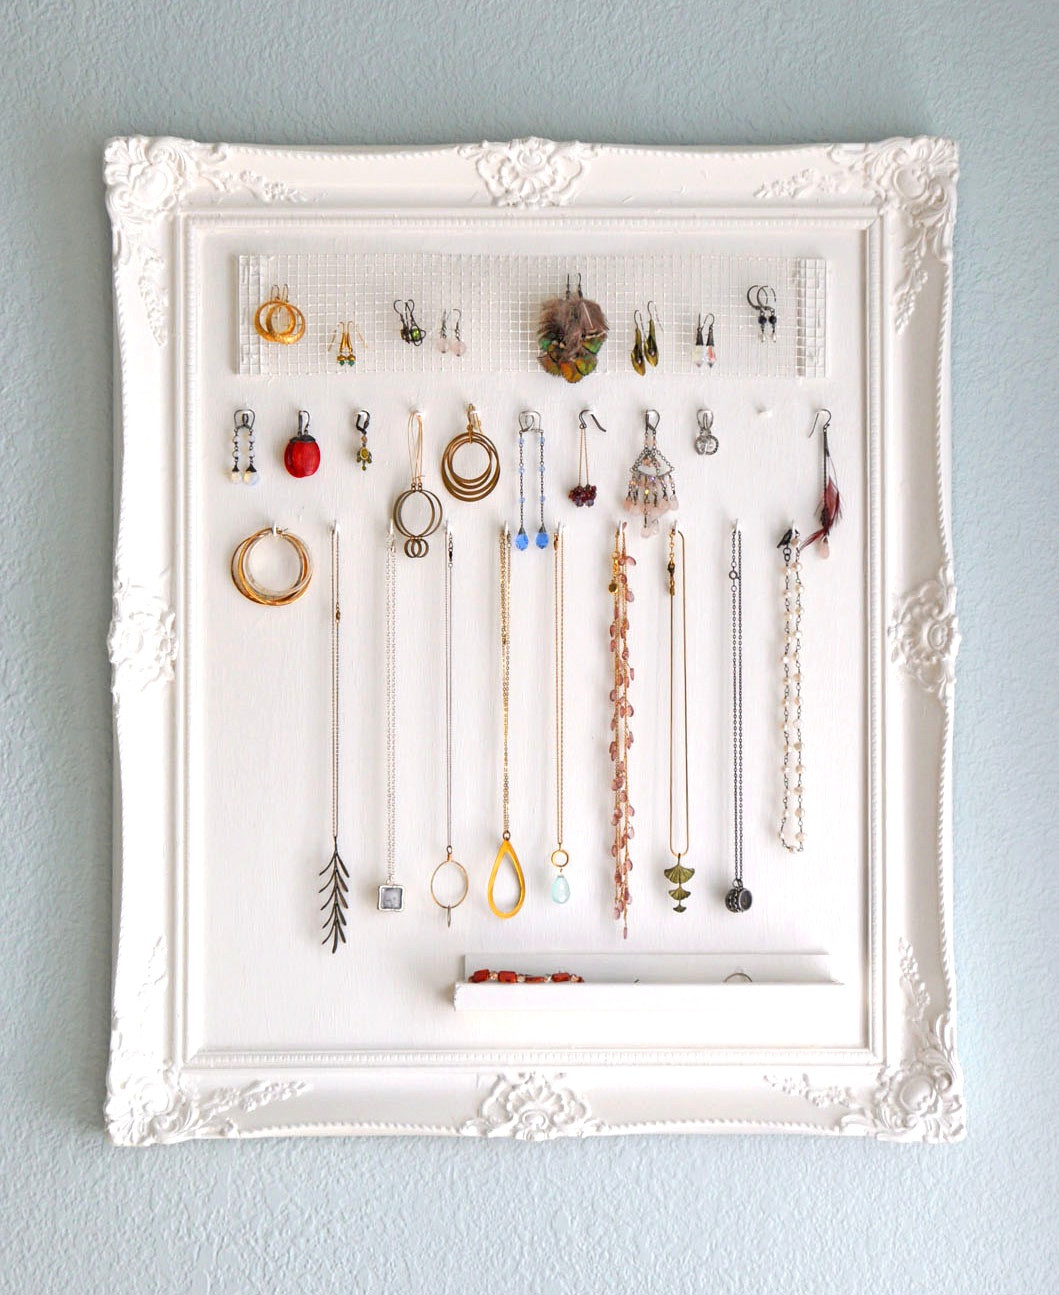 Best ideas about DIY Necklace Organizer . Save or Pin 23 Jewelry Display DIYs Now.